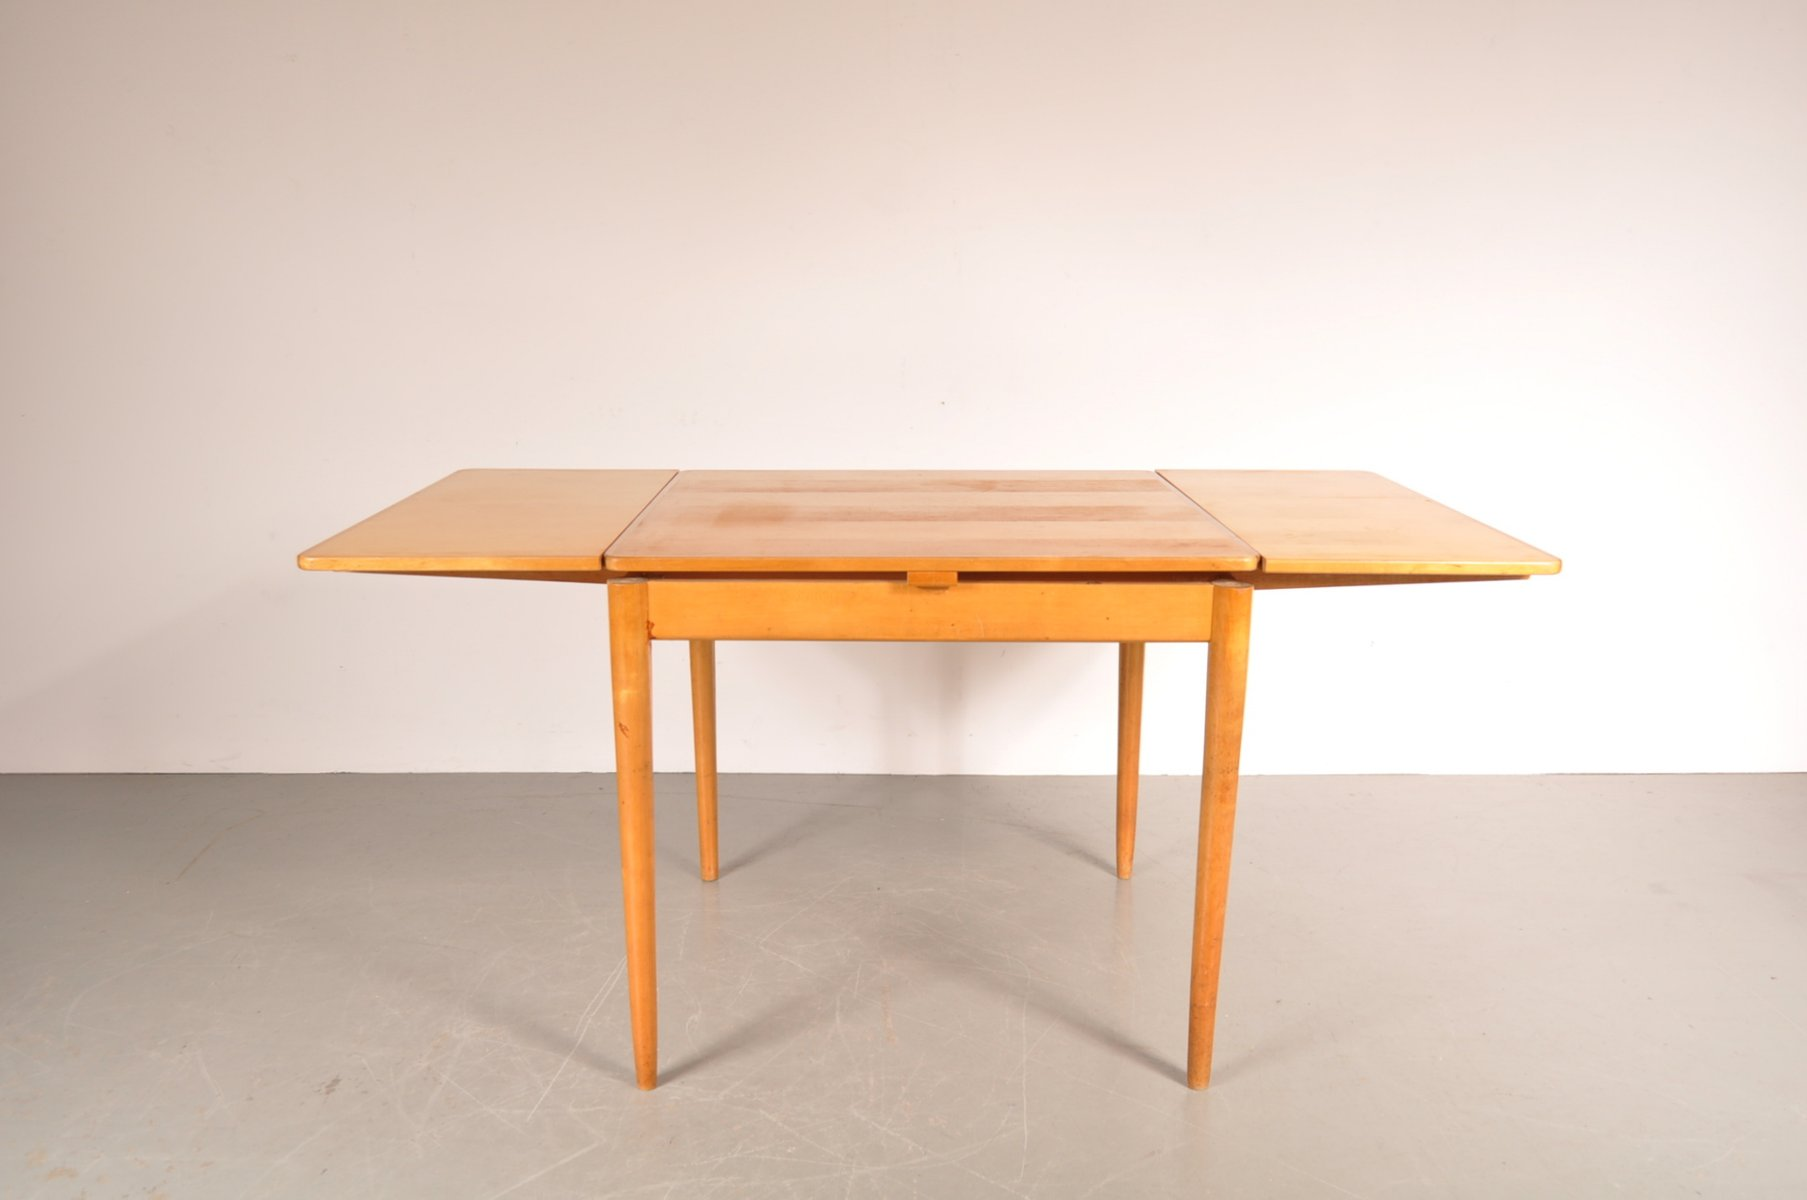 Table salle a manger extensible table salle a manger for Table salle a manger triangulaire